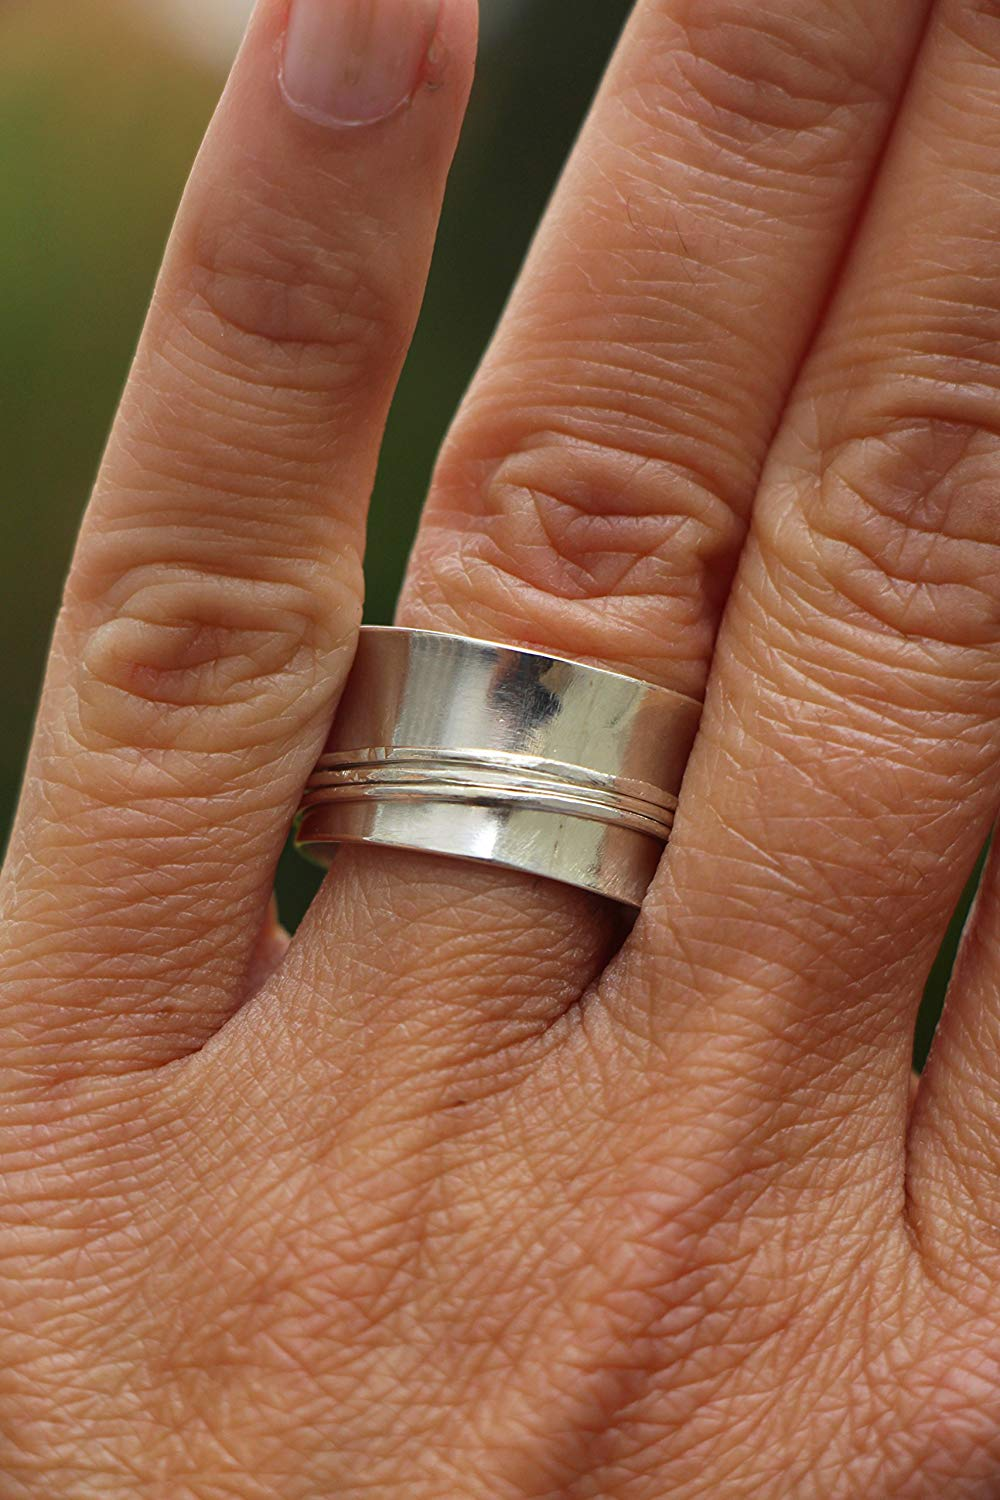 Wide Silver Ring, Spinner Silver Ring, Wide Band Sterling Silver Ring, Band Ring, Thick Silver Ring - Women's Silver Ring, Men's Silver Ring